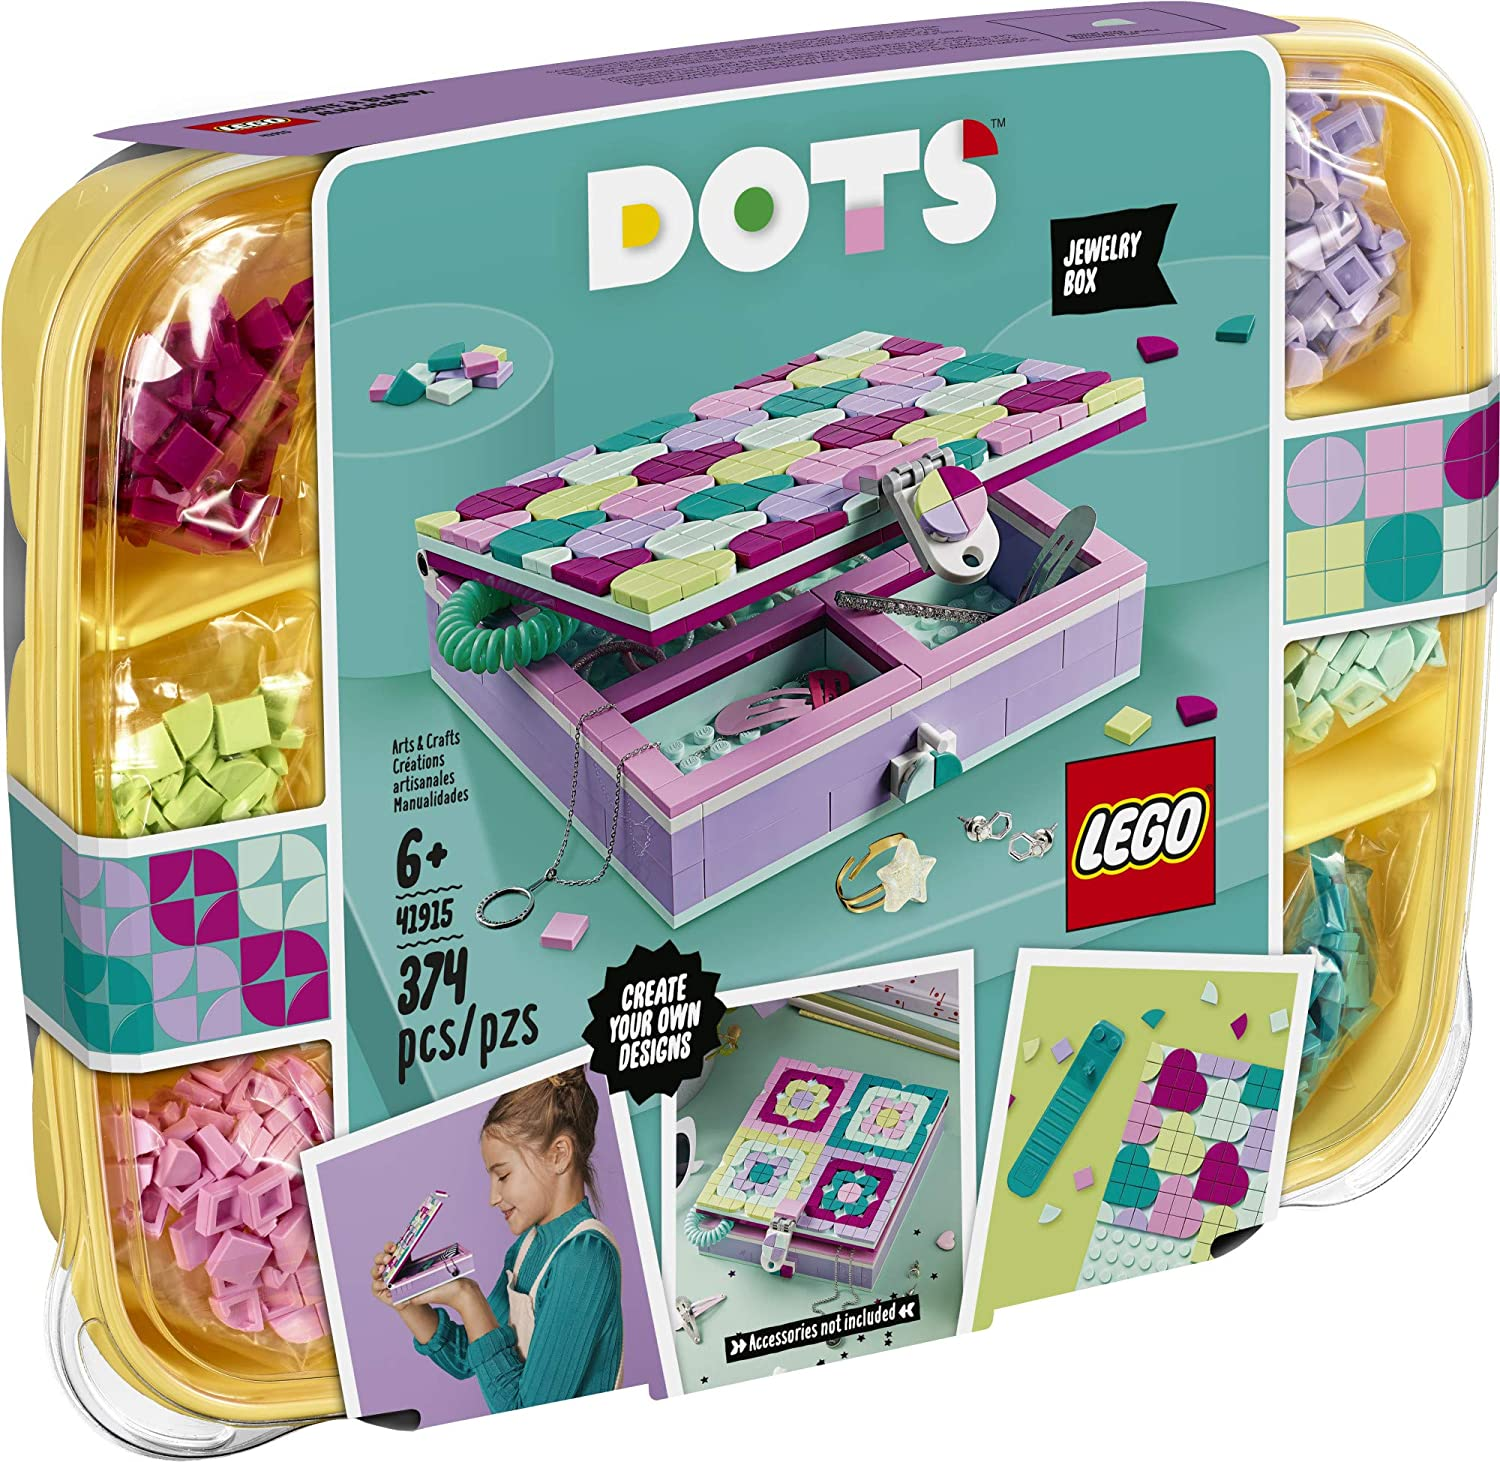 LEGO DOTS Jewelry Box 20 Craft Decorations Art Kit, for Kids Who are  Into Cool Arts and Crafts, A Great Entrance into Unique Arts and Crafts  Toys ...